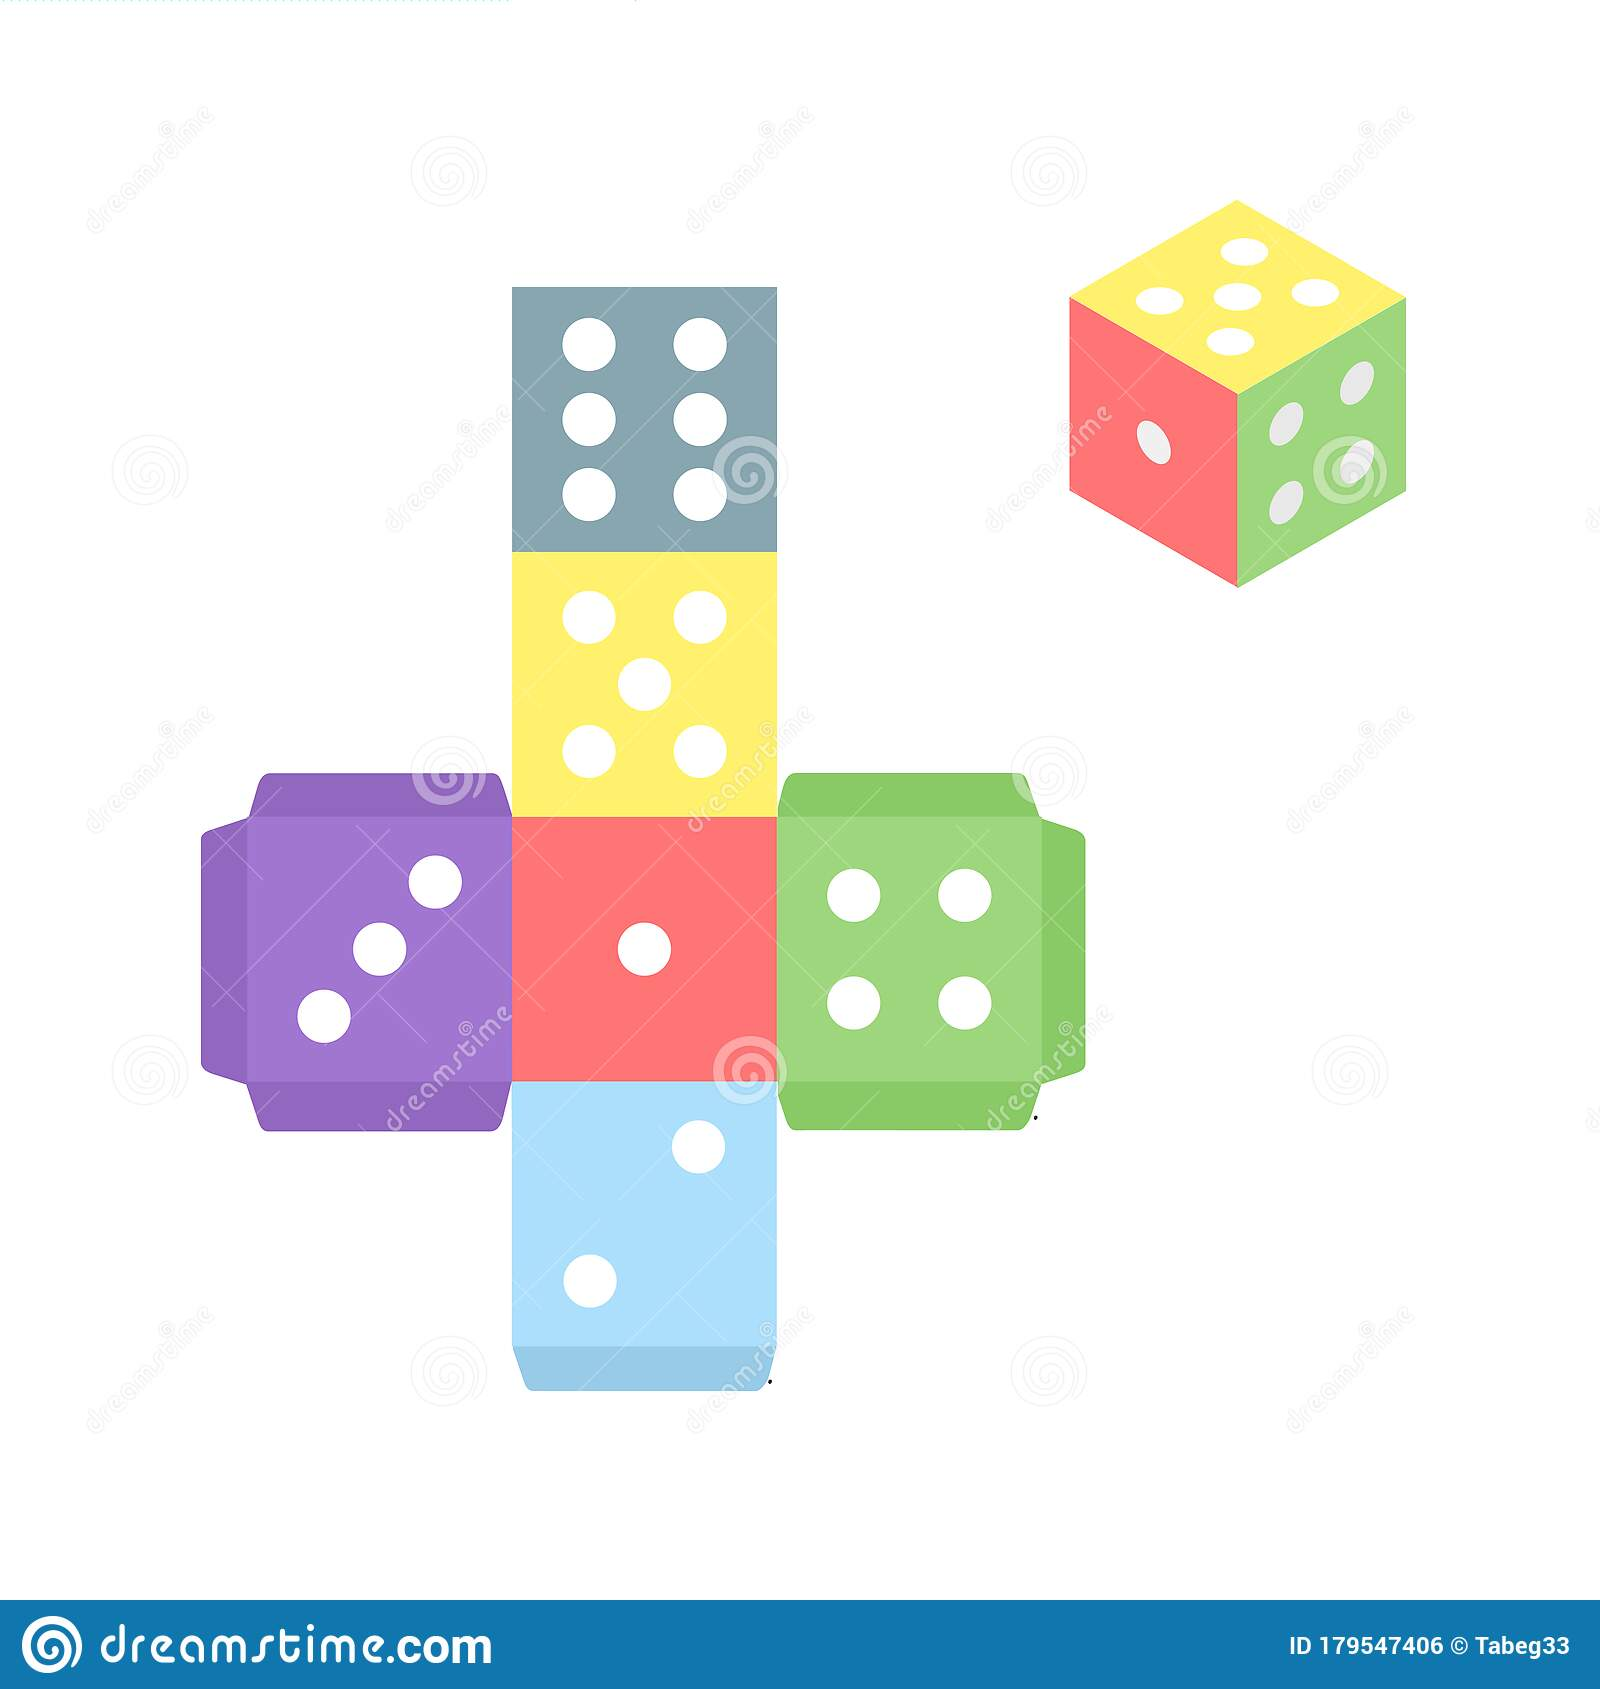 Gamecube For Print Multicolor Dice Template On White